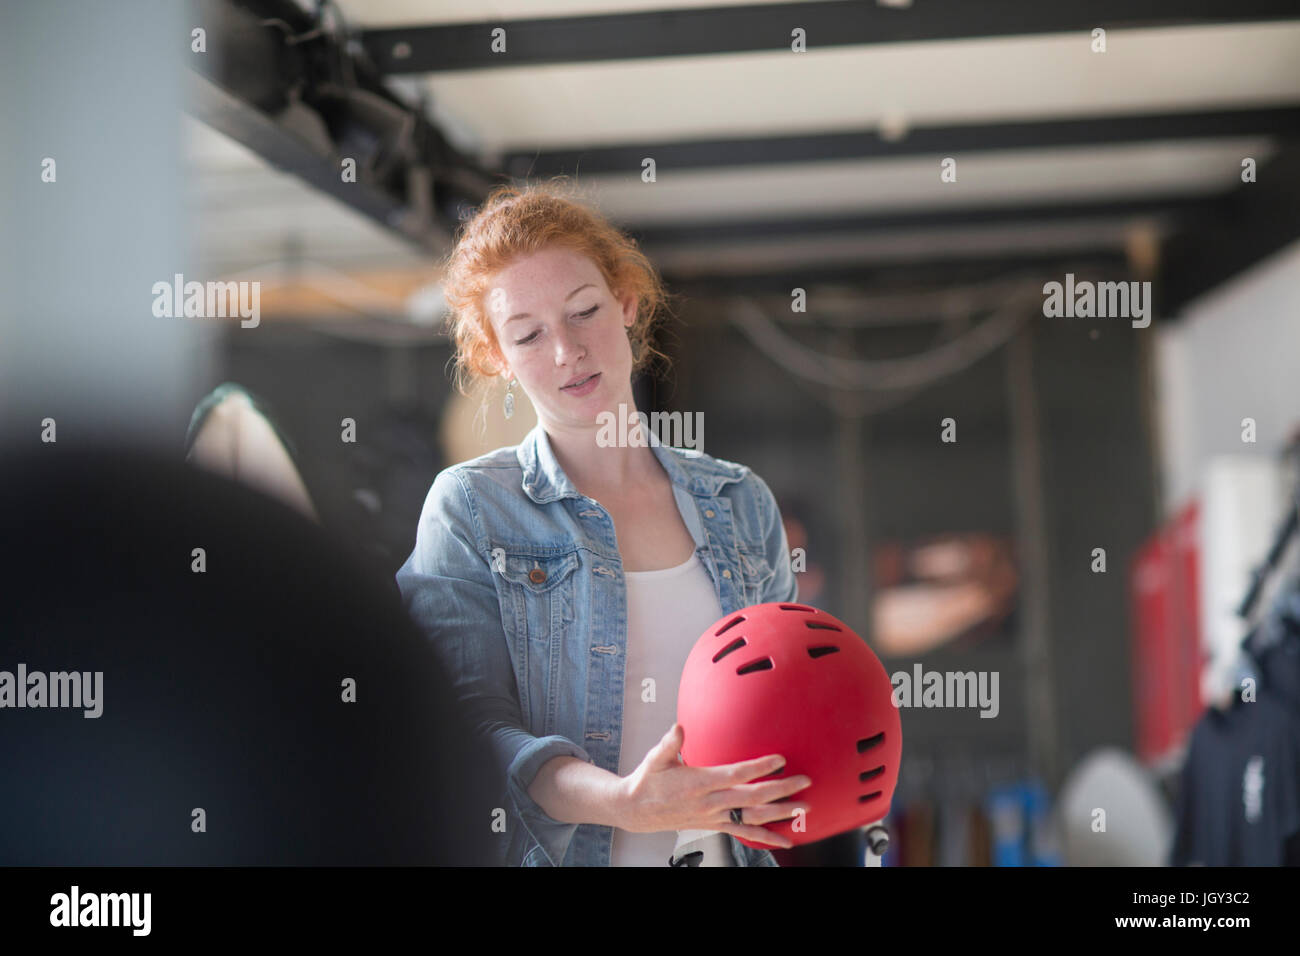 Woman working in board shop, inspecting safety helmet - Stock Image